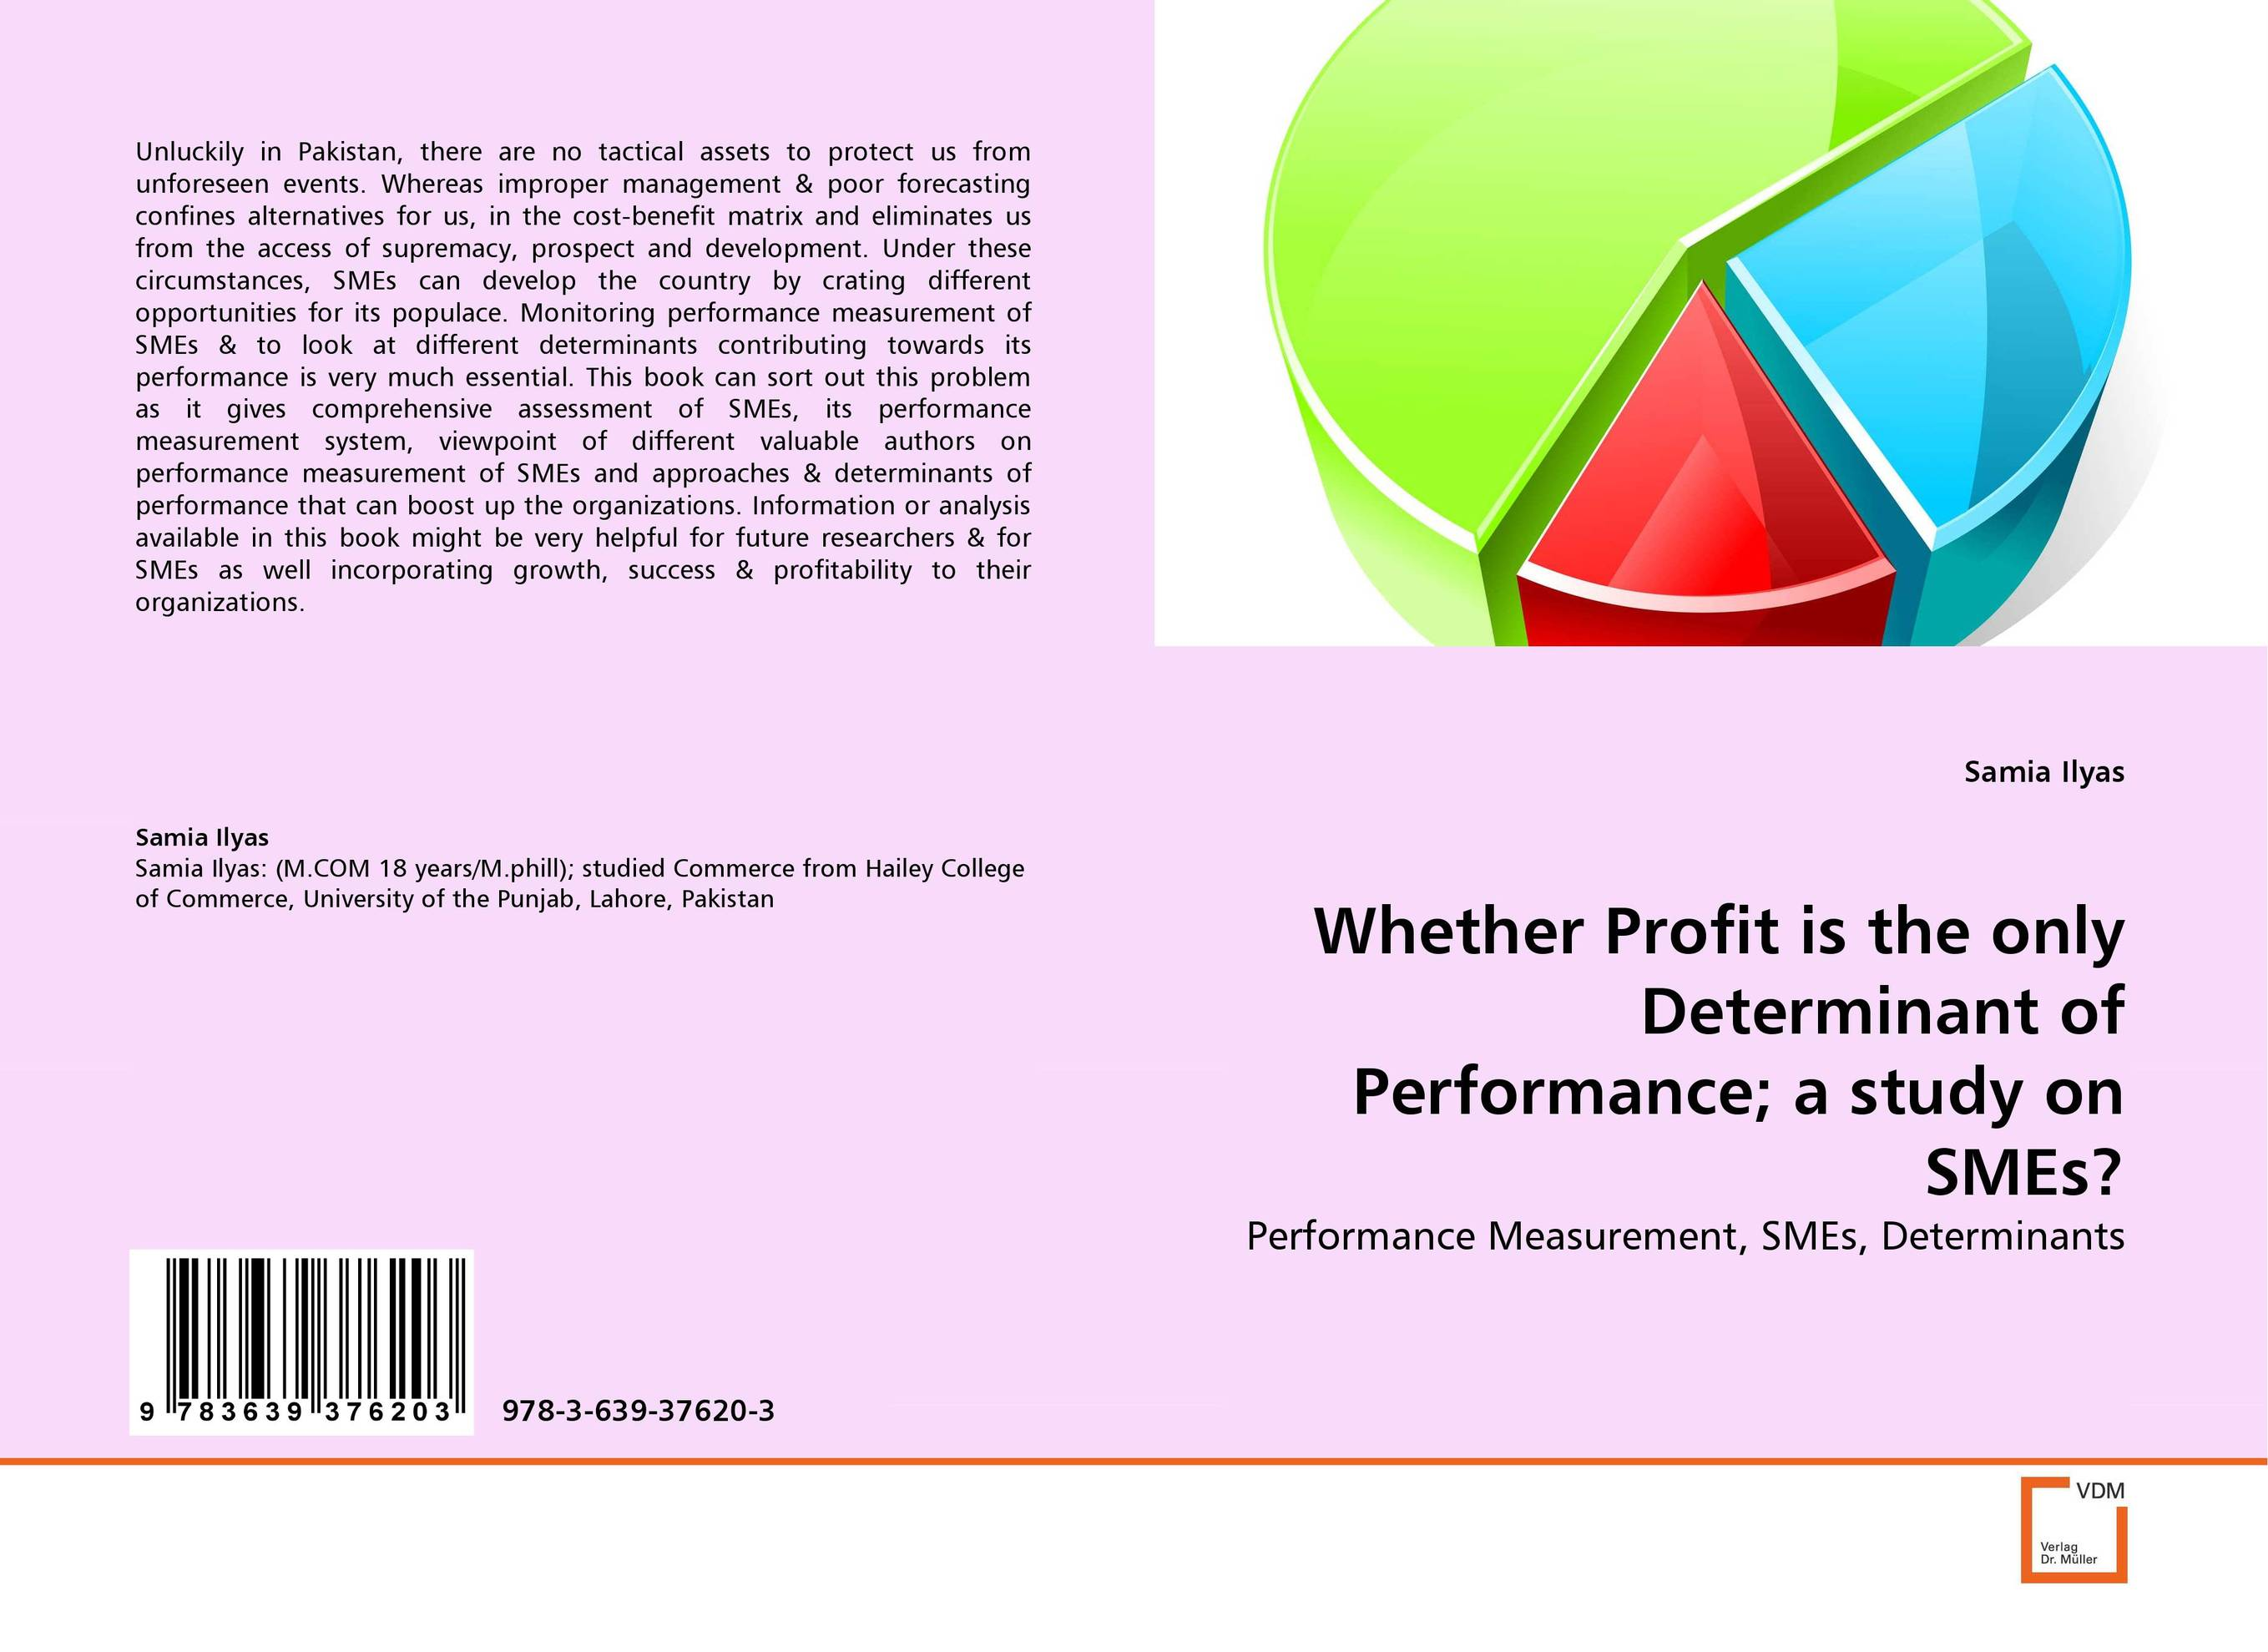 Whether Profit is the only Determinant of Performance; a study on SMEs? productivity improvement measures and performance of smes